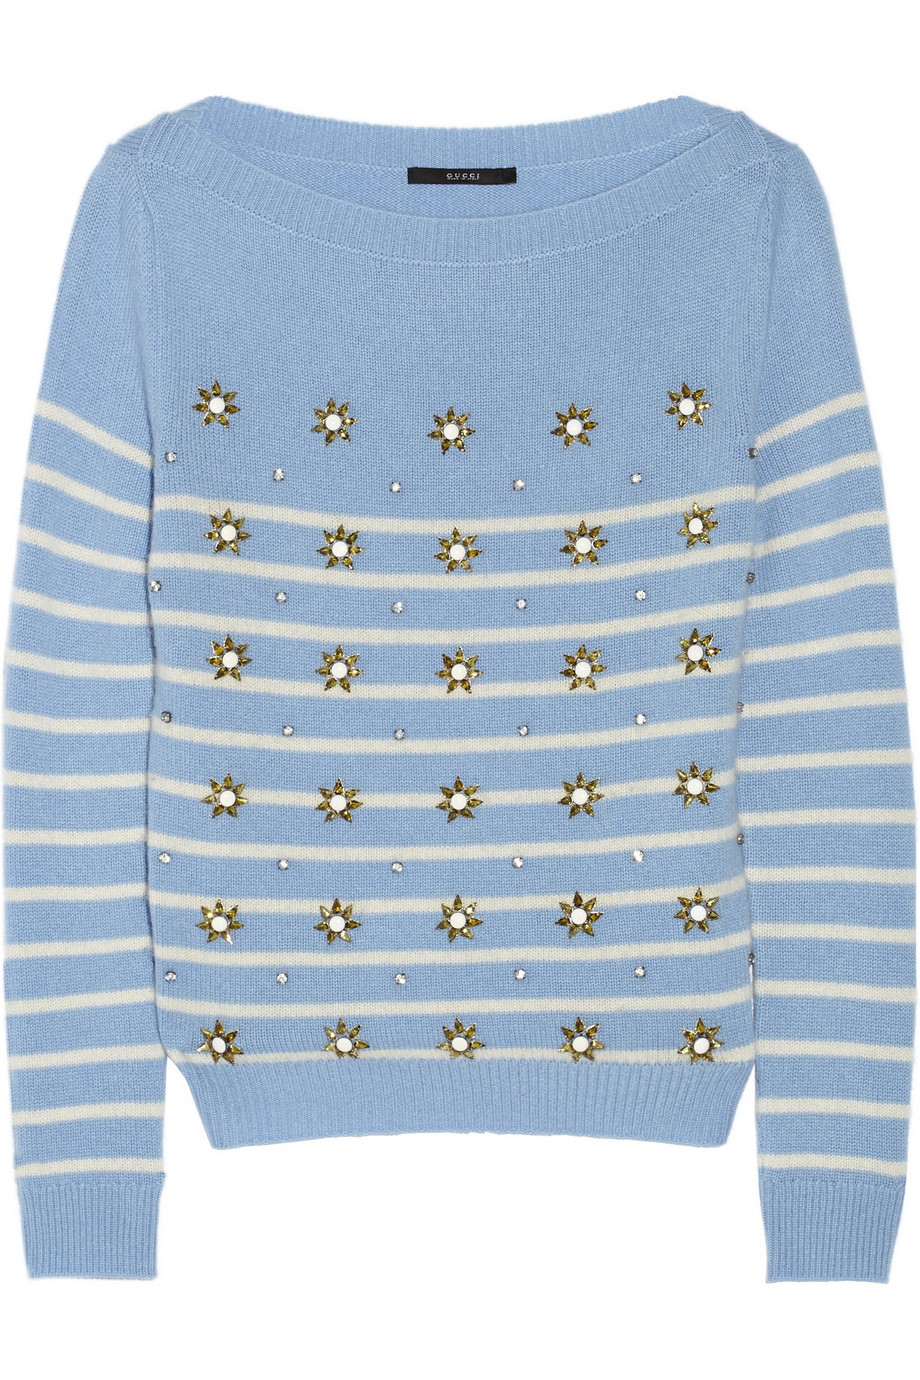 Gucci Embellished Striped Cashmere Sweater, Size: XL